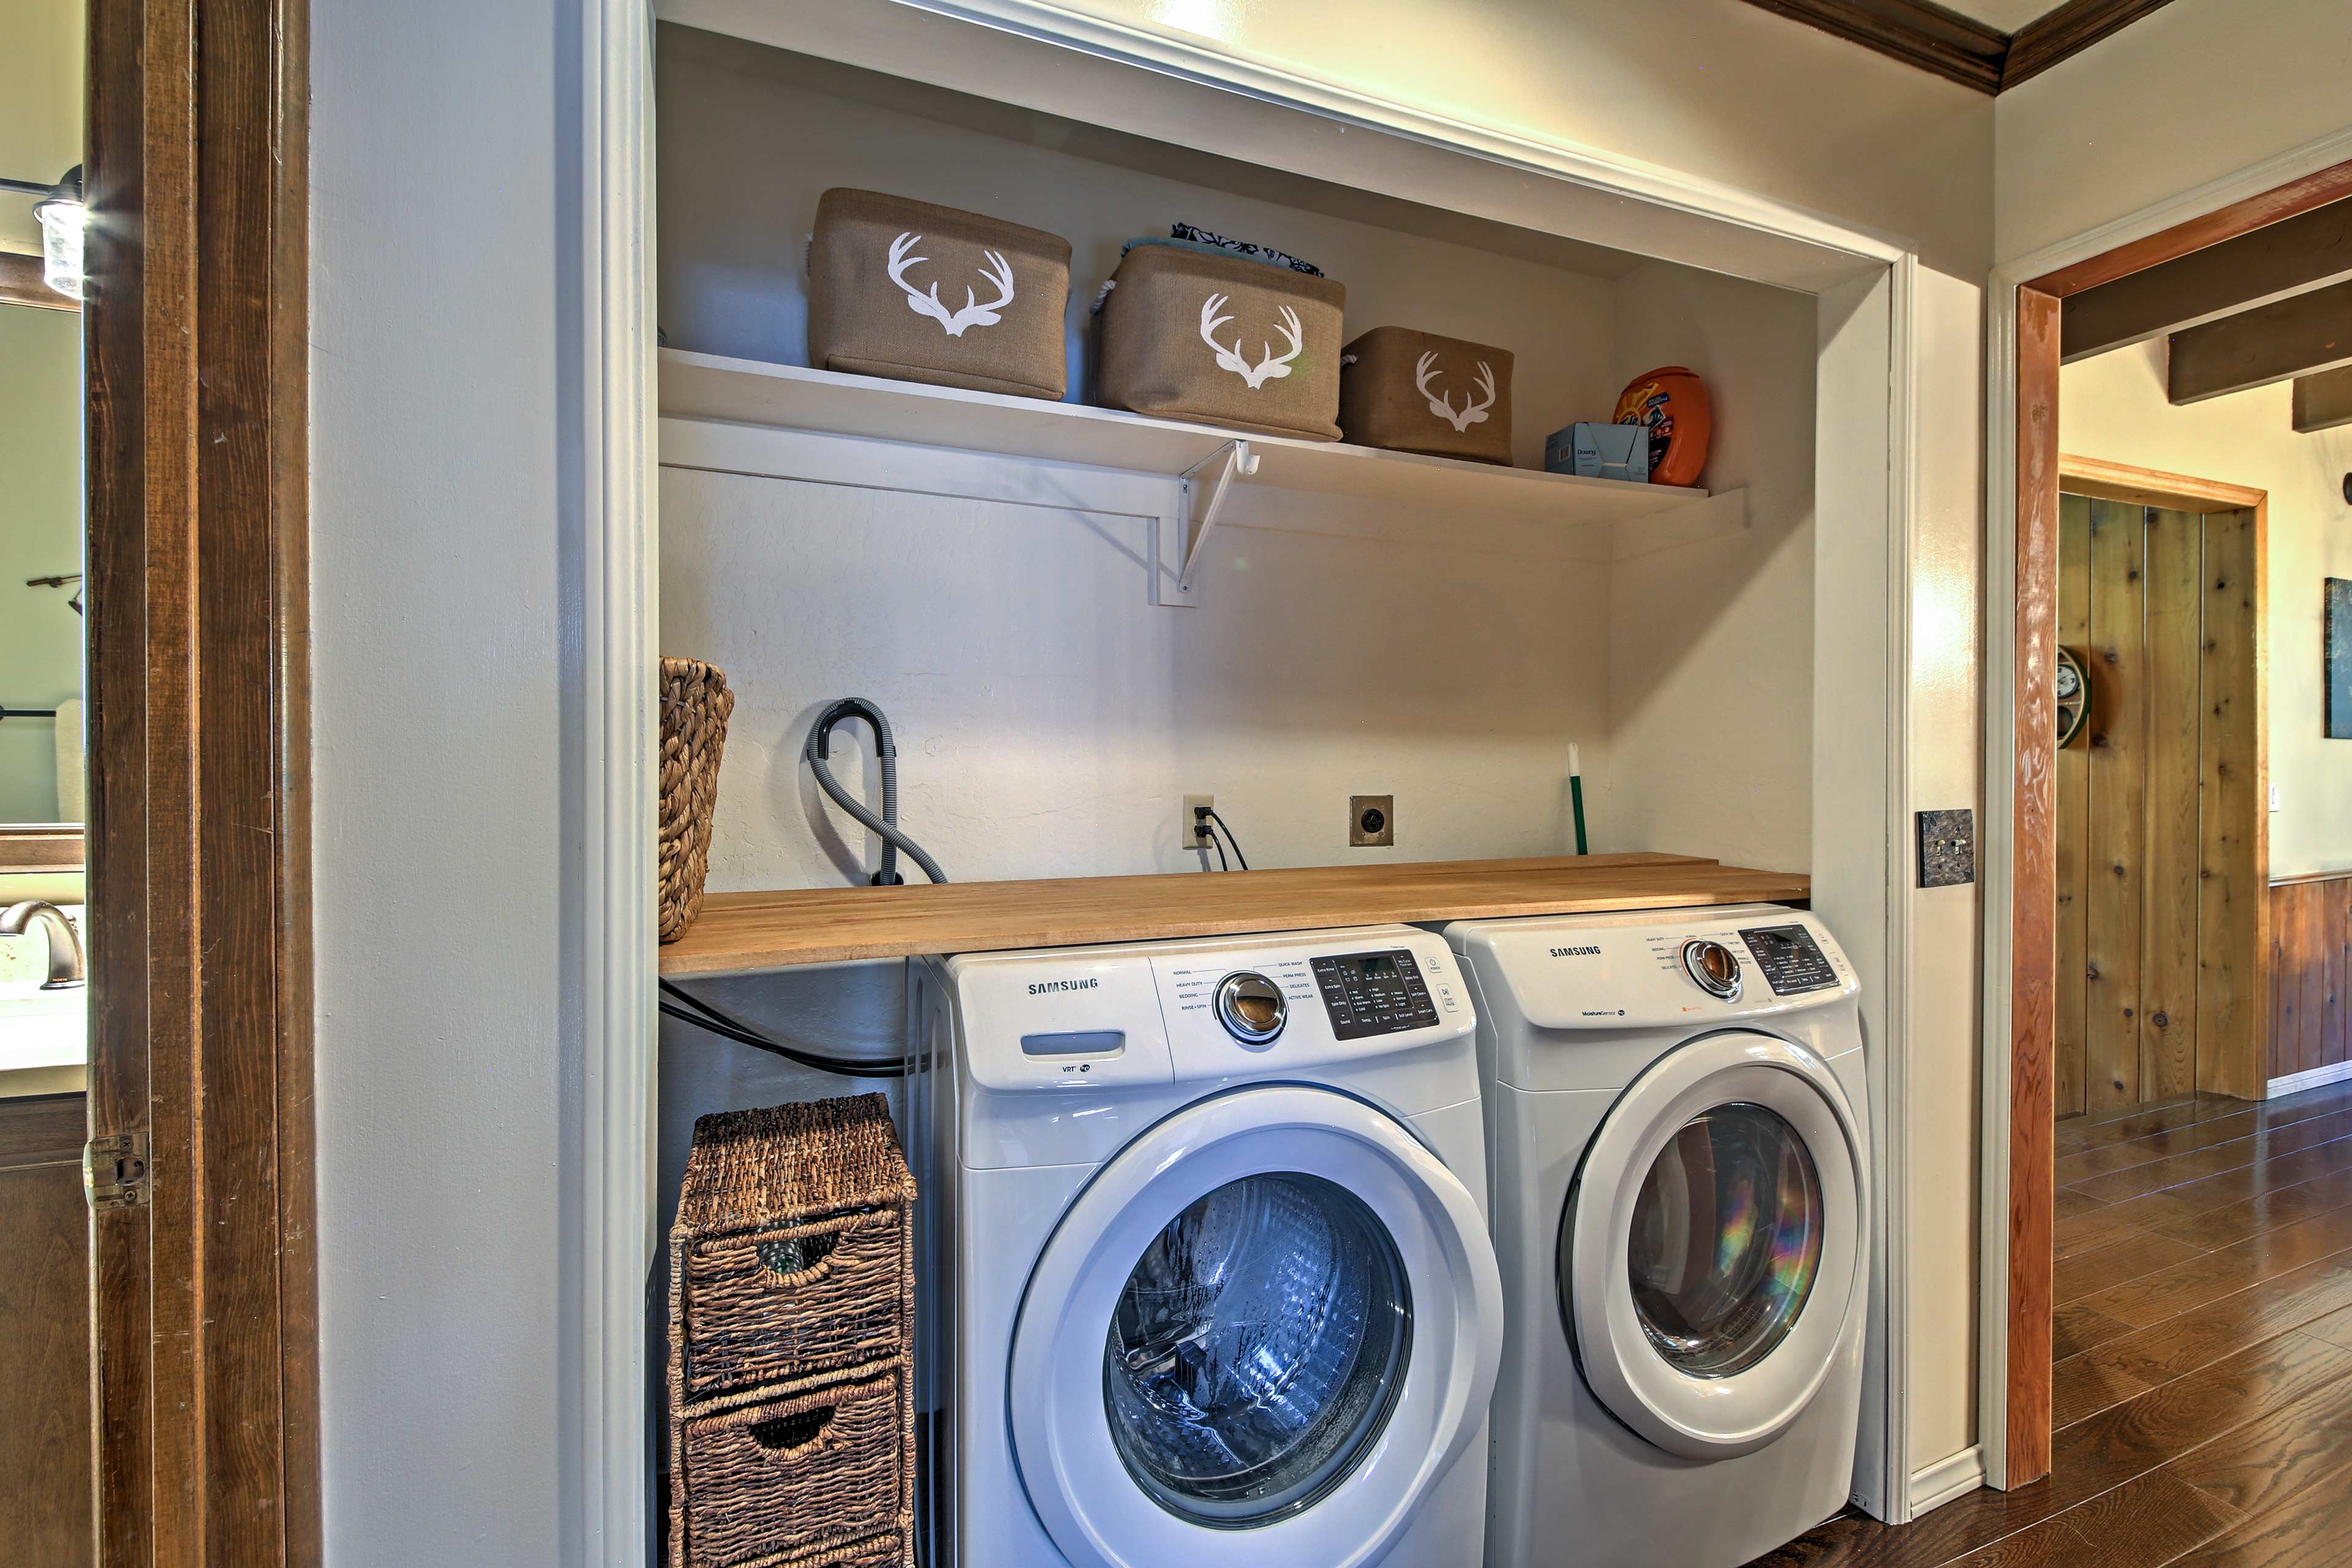 Use the washer and dryer to keep everyone's clothing clean.